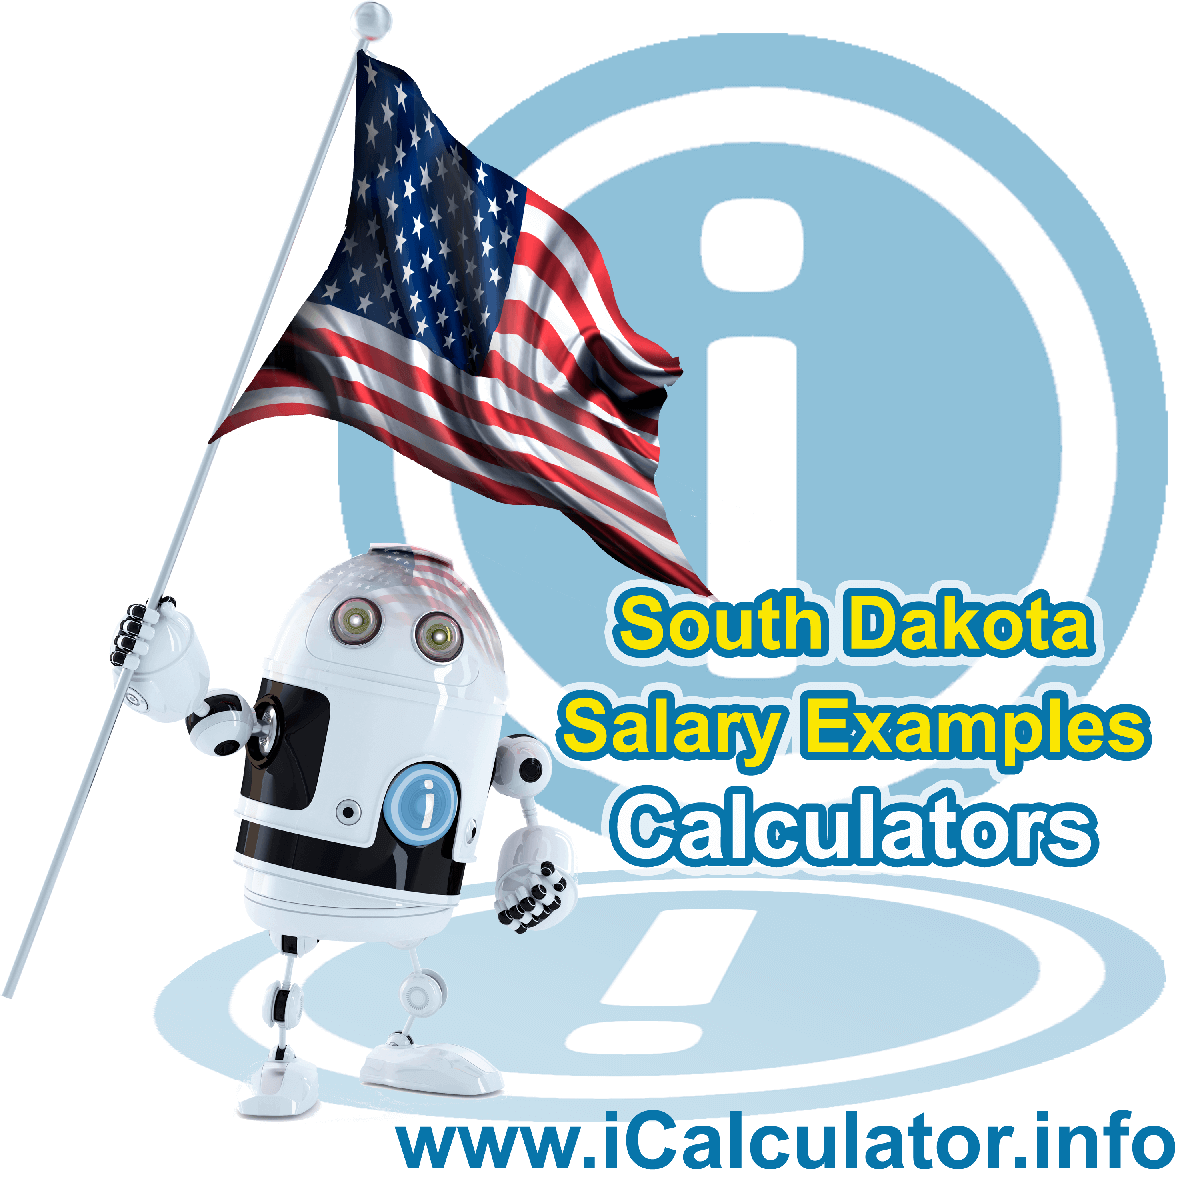 South Dakota Salary Example for $40.00 in 2020 | iCalculator | $40.00 salary example for employee and employer paying South Dakota State tincome taxes. Detailed salary after tax calculation including South Dakota State Tax, Federal State Tax, Medicare Deductions, Social Security, Capital Gains and other income tax and salary deductions complete with supporting South Dakota state tax tables